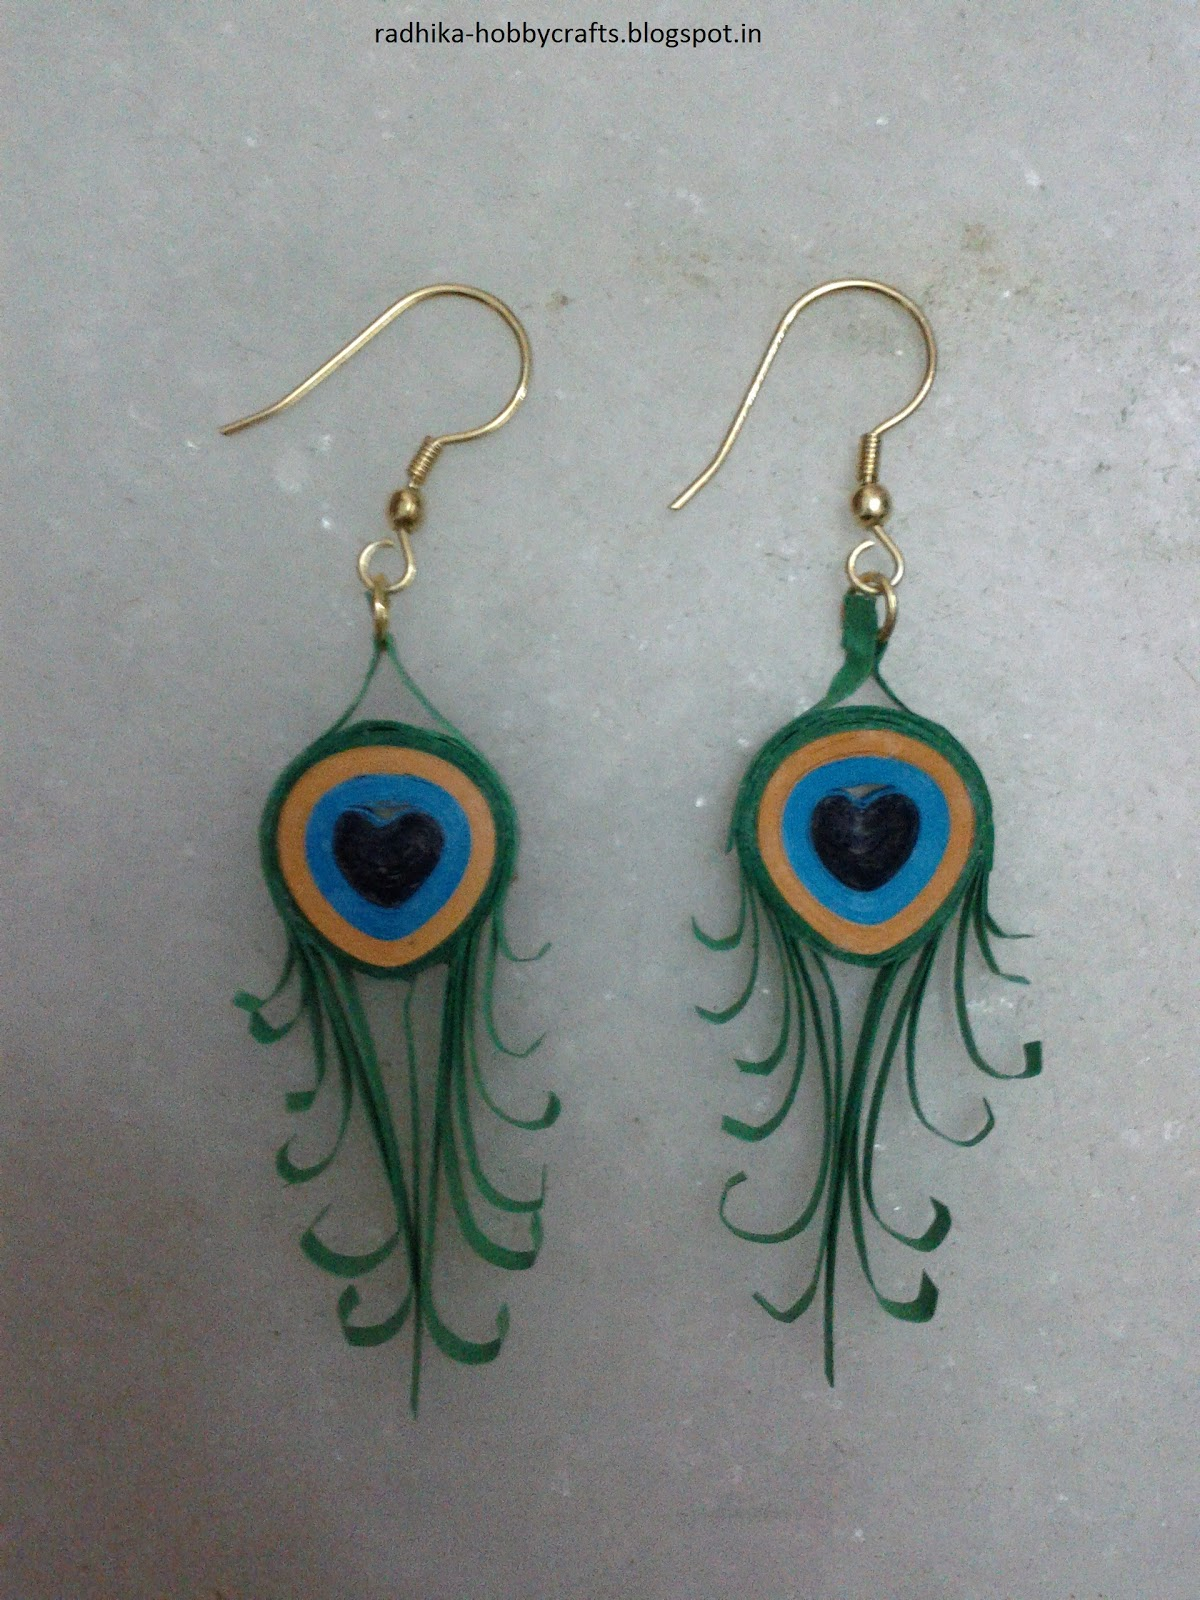 Hobby Crafts :): Quilled jewllery (earrings)